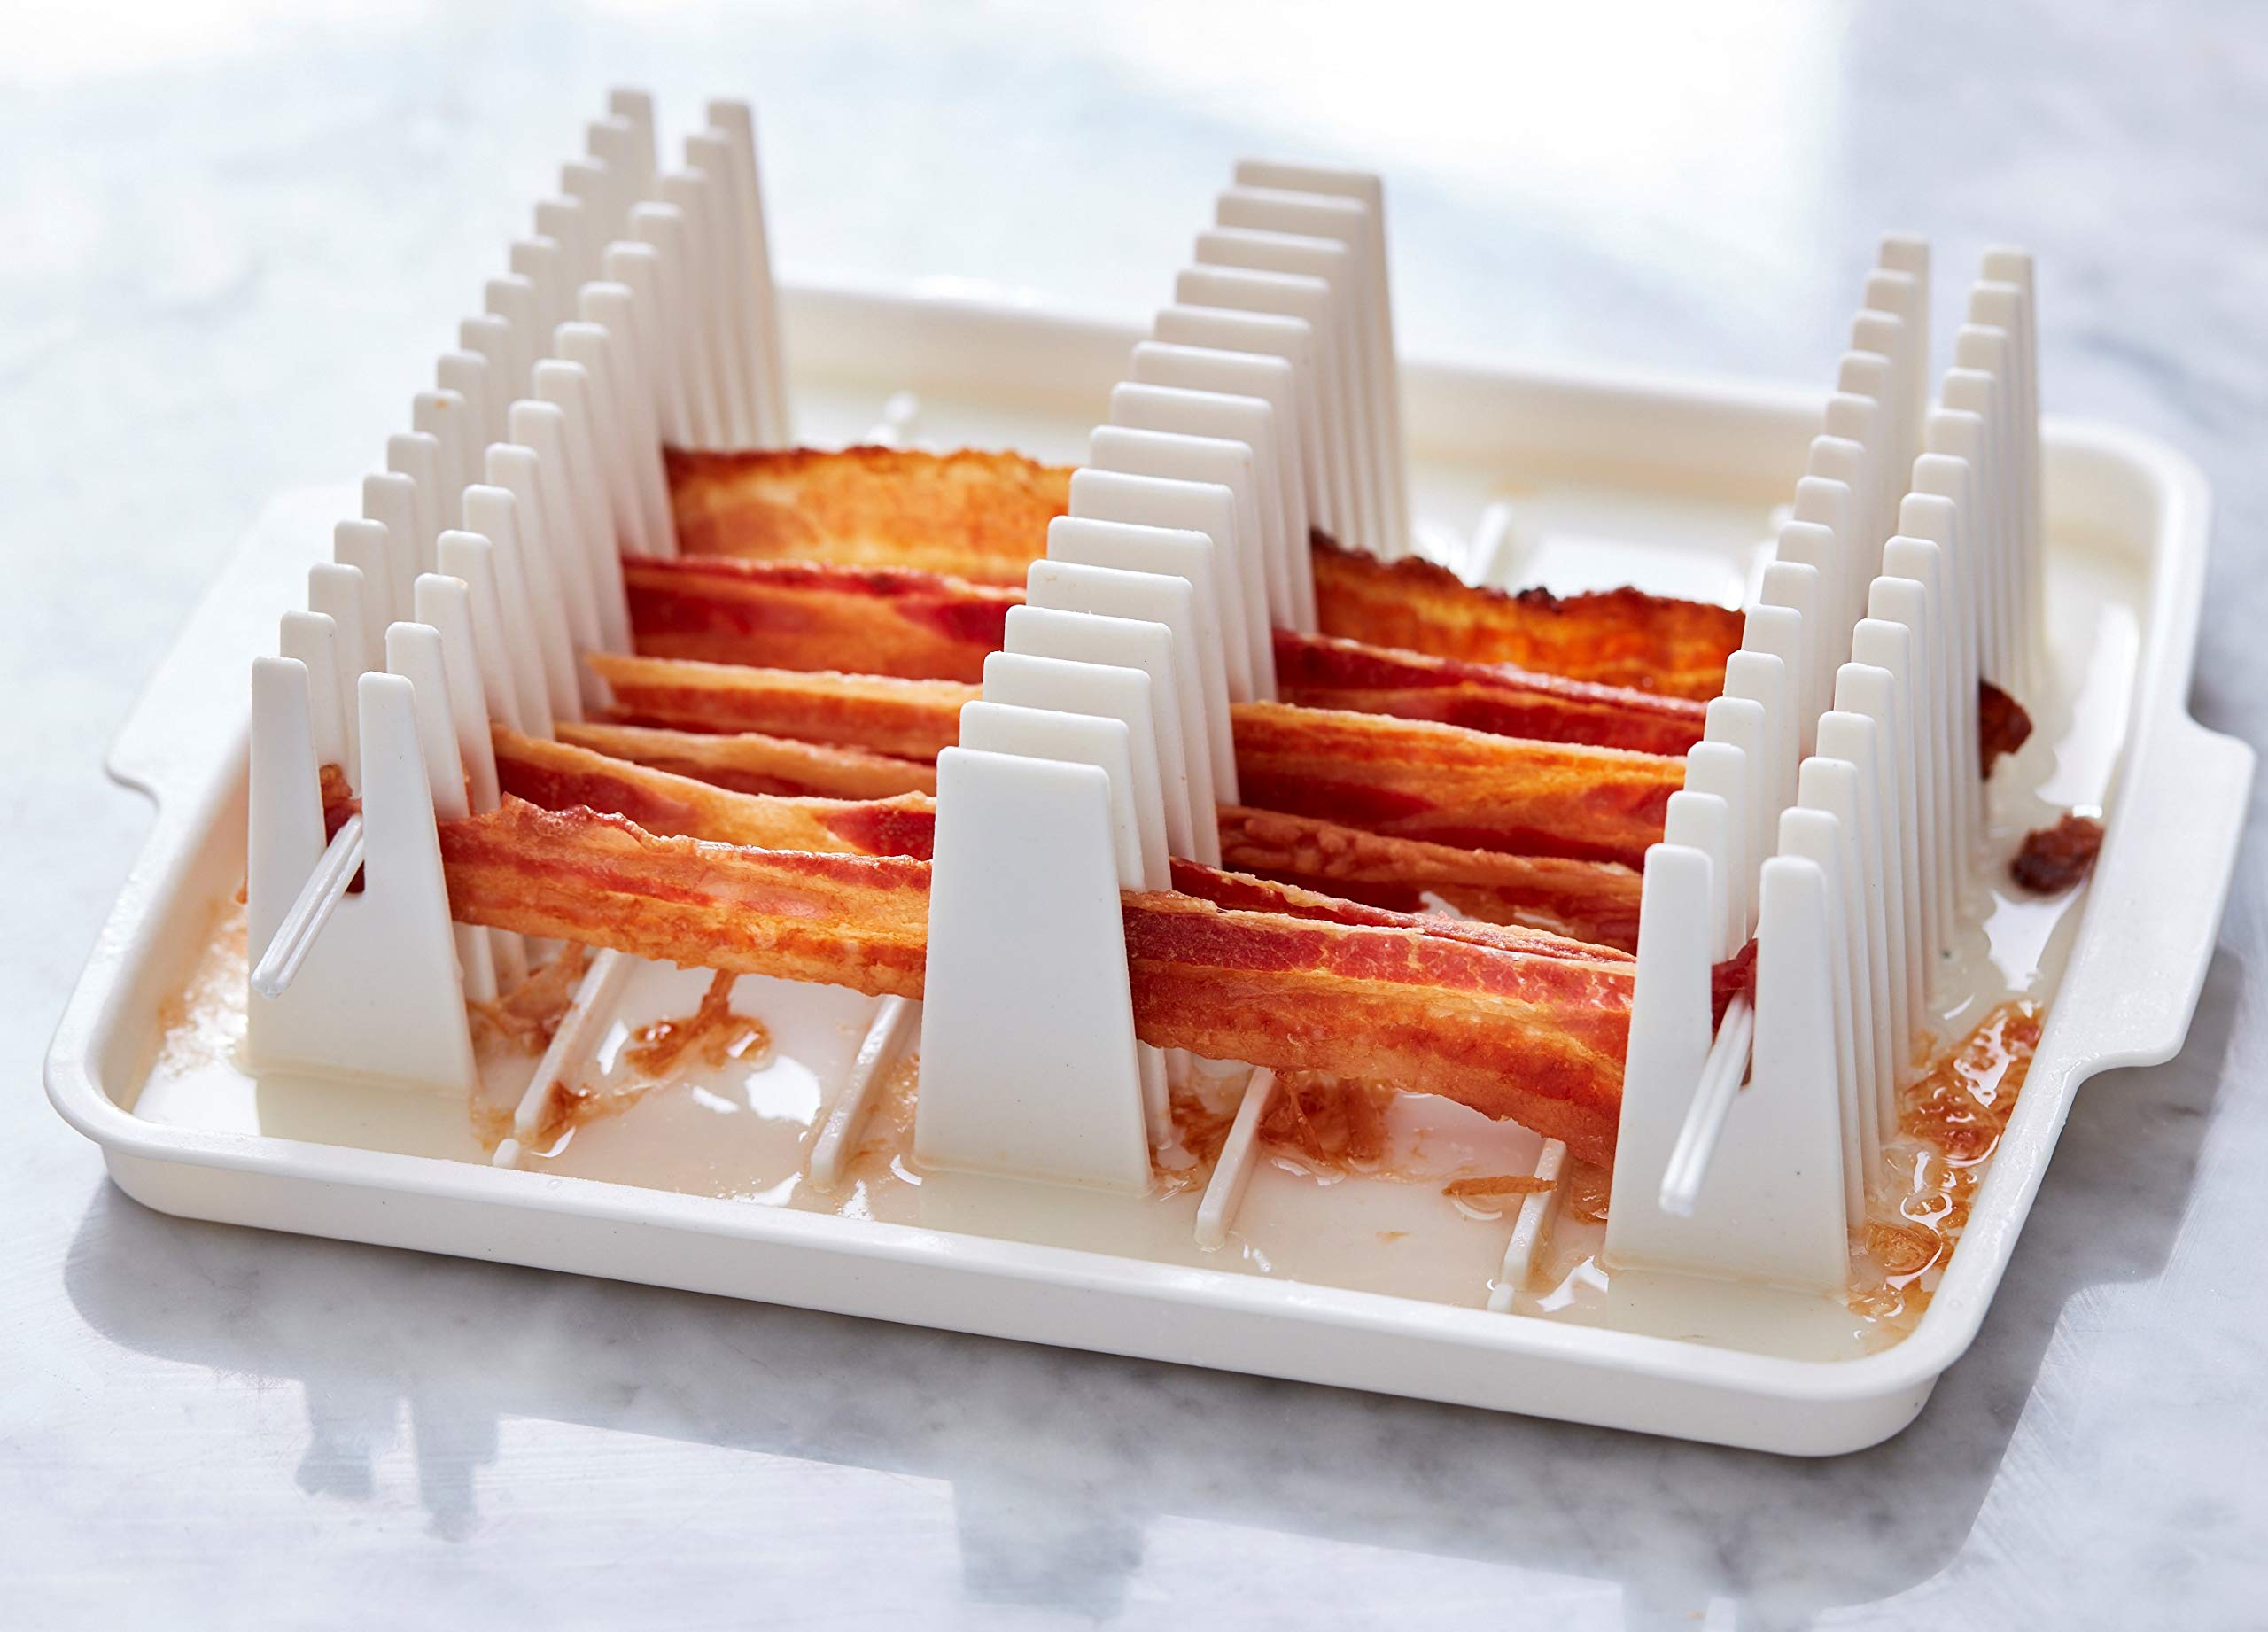 Emson Wave, Microwave Cooker Tray, Reduces Fat up to 35% for Healthy, Make Crispy Bacon in Minutes, Original As Seen On TV New, Small, White